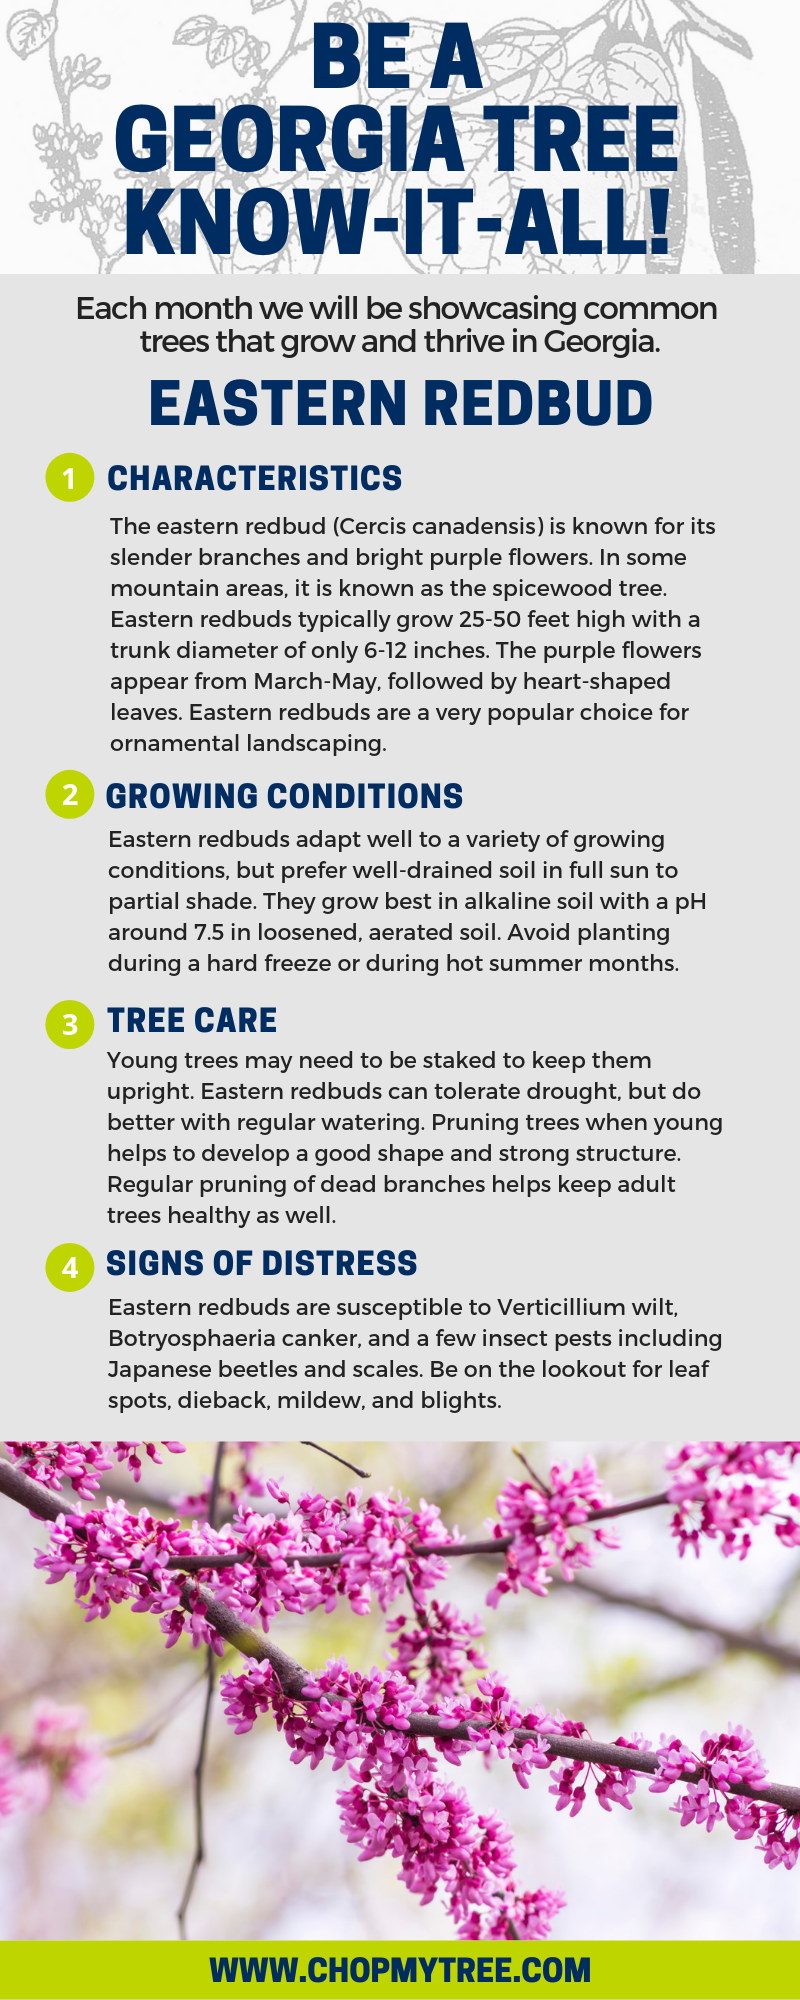 Infographic of the characteristics, growing conditions, tree care, and signs of distress of the eastern redbud tree.